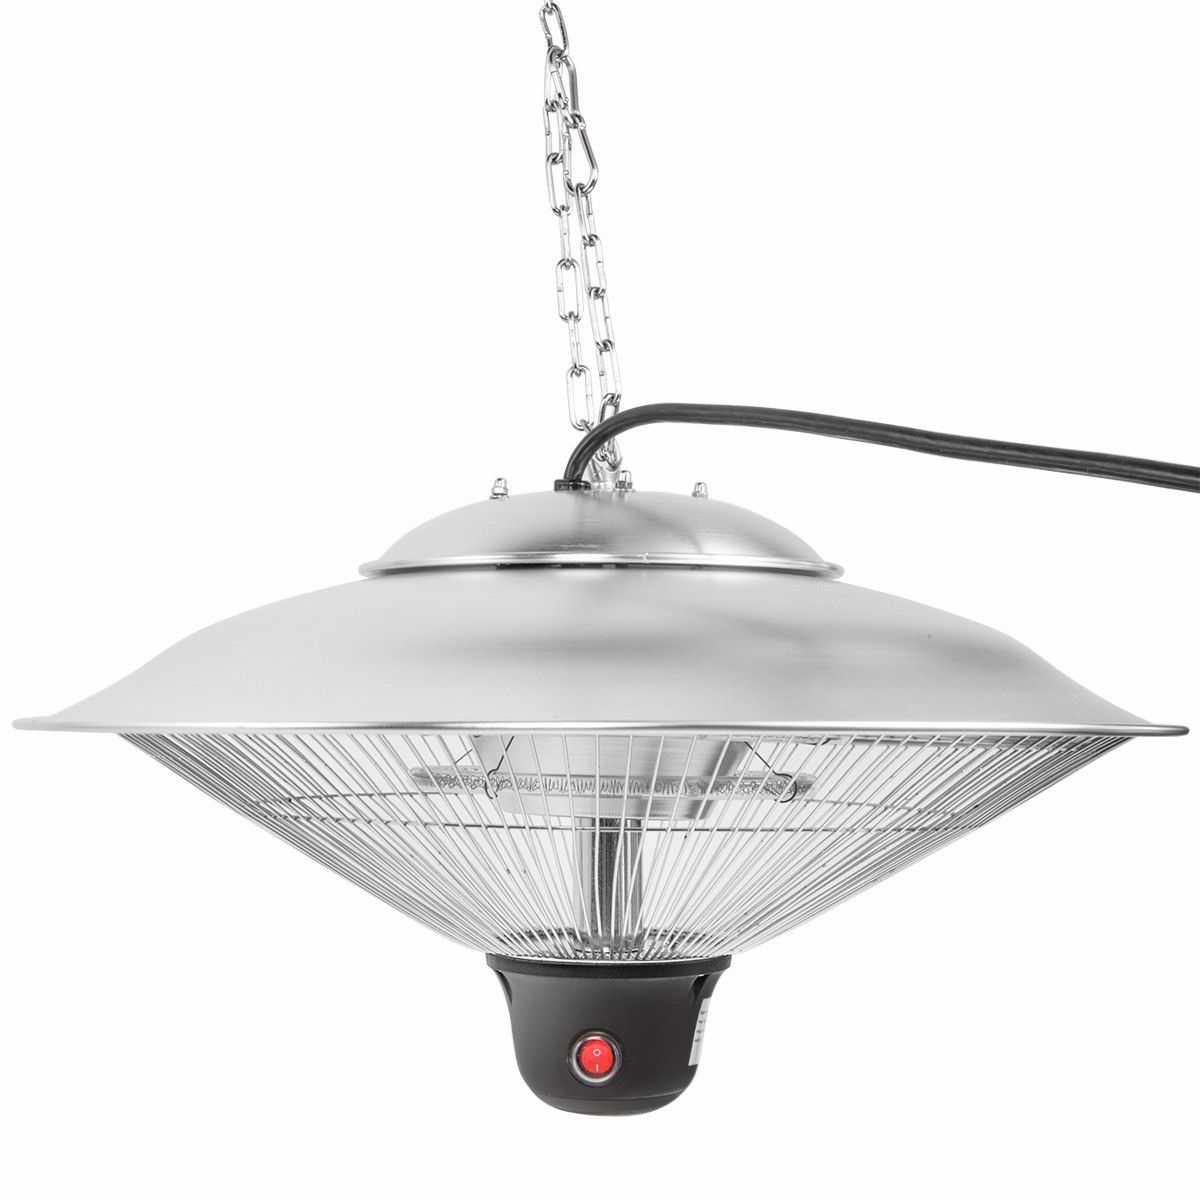 9TRADING 20 Electric Patio Infrared Outdoor Ceiling Heater Indoor Hanging Garden Remote,Free Tax,Delivered Within 10 Days